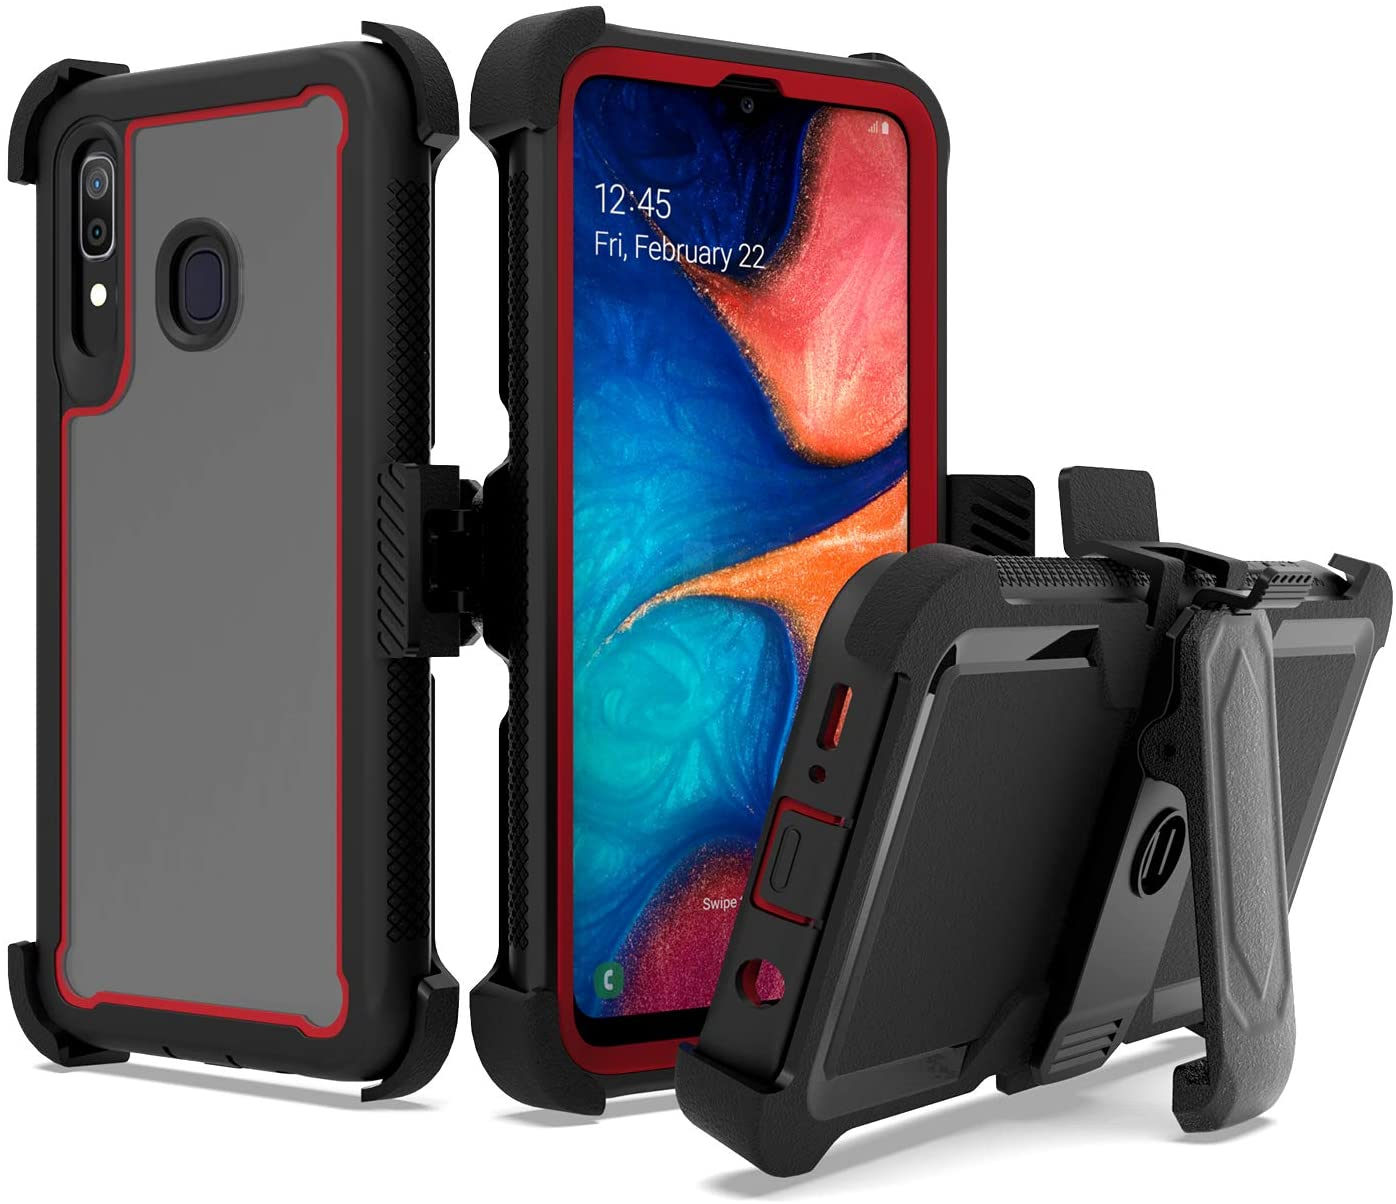 UNC Pro 3 in 1 Cell Phone Case for Samsung Galaxy A20 / A30 / A50, 360 Degrees Rotating Kickstand Belt Clip Holster Hybrid Case, Heavy Duty Shockproof Bumper Anti-Scratch, Black/Red